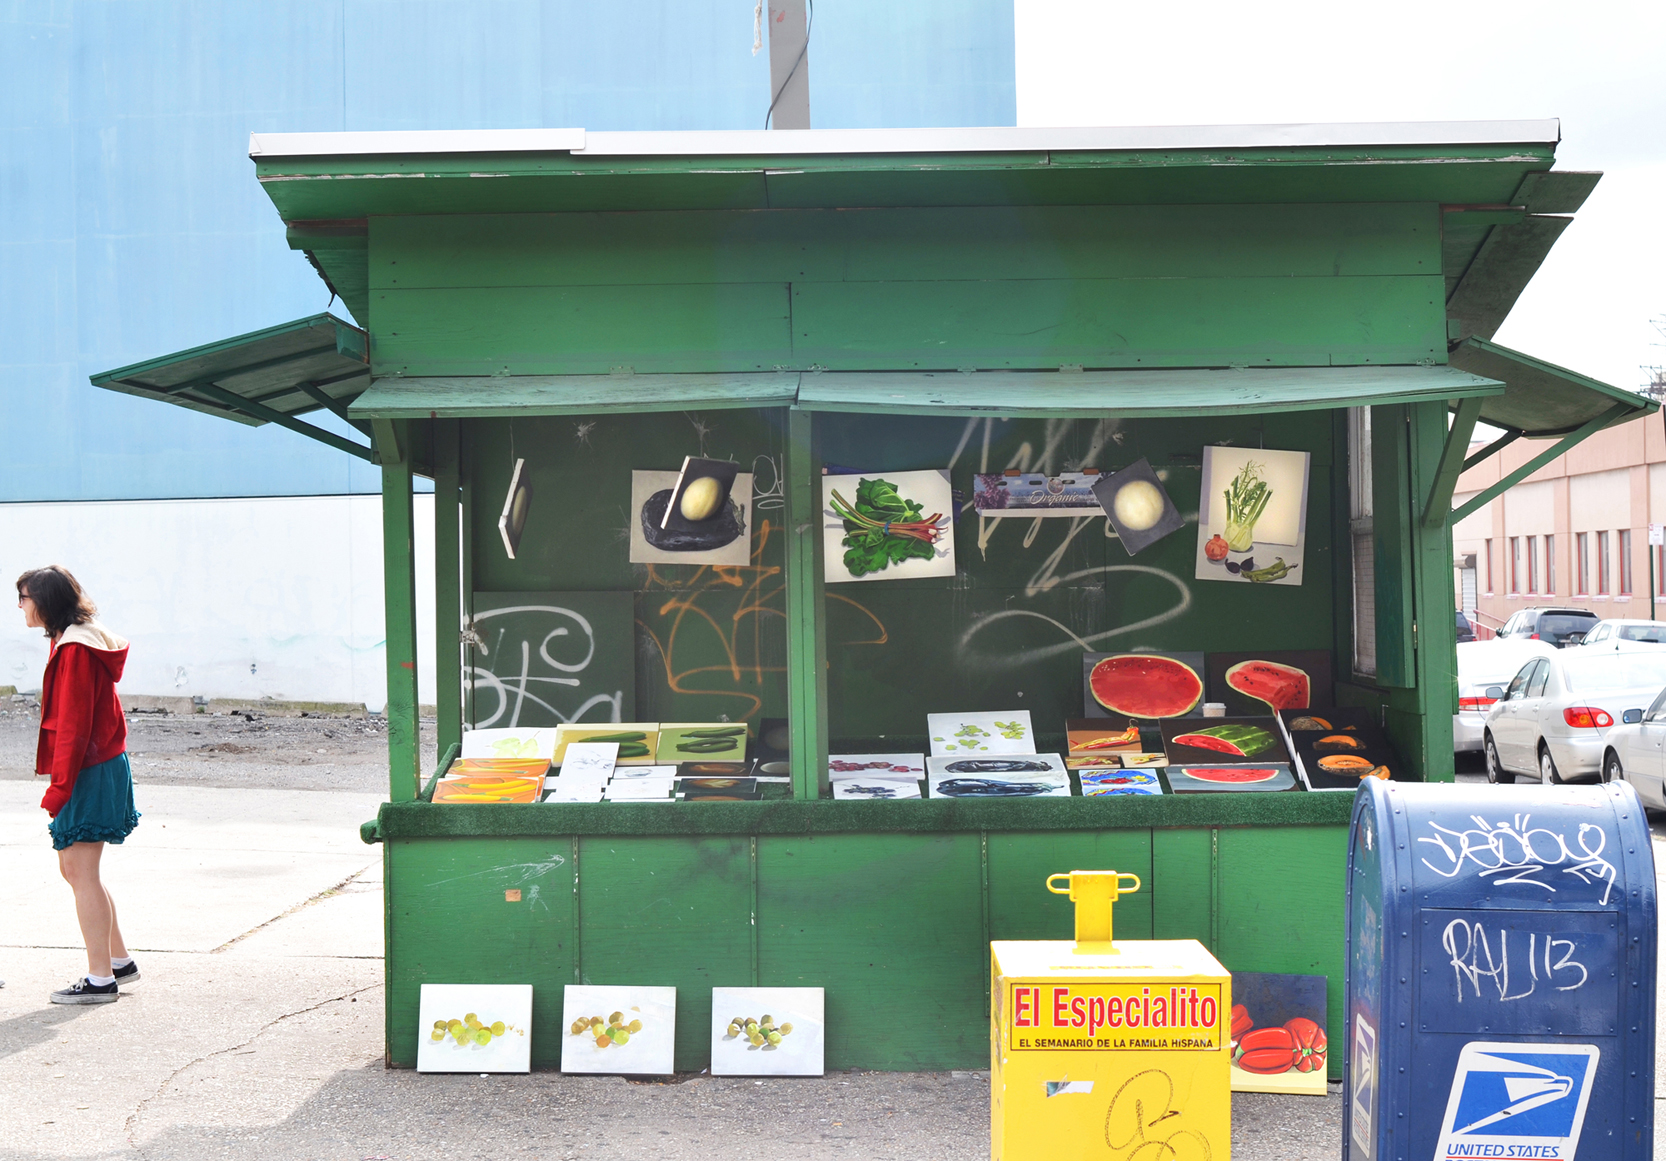 Paul Branca, Fruit and Vegetable Stand, A Project by Paul Branca, October 27, 2012,  Queens Boulevard, Brooklyn, NYC